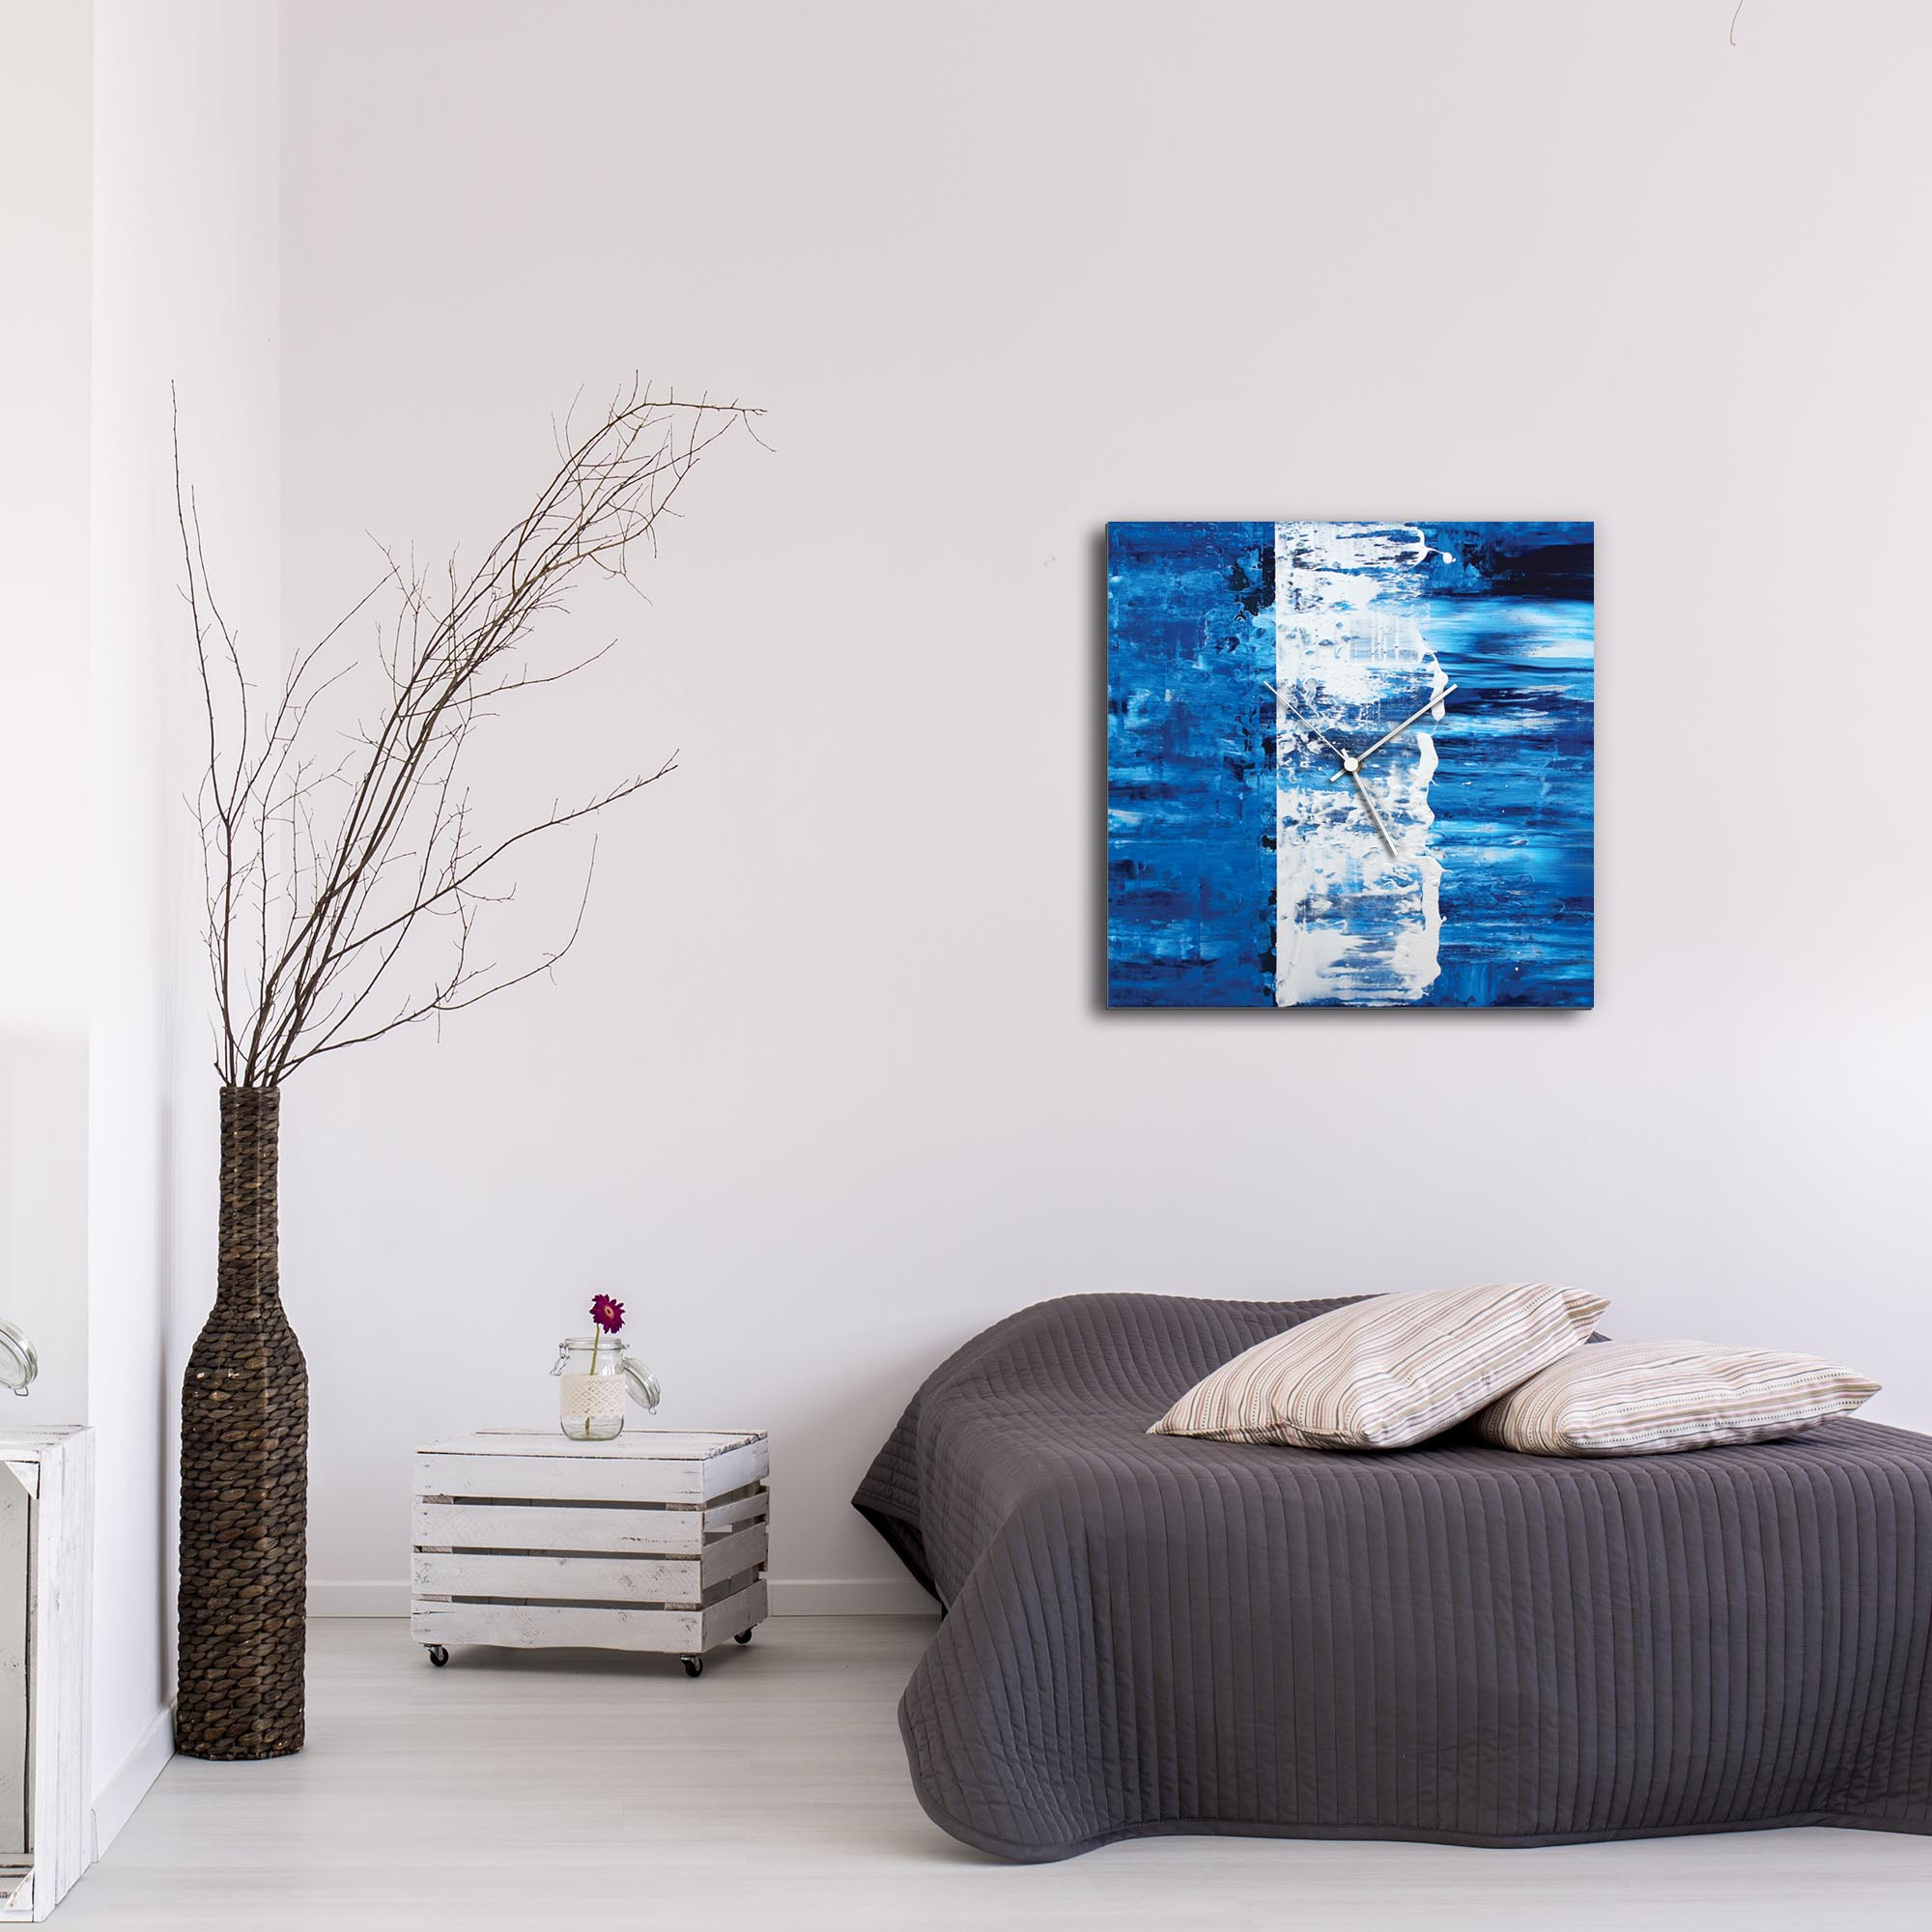 Blue Street Square Clock Large by Mendo Vasilevski - Urban Abstract Home Decor - Lifestyle View